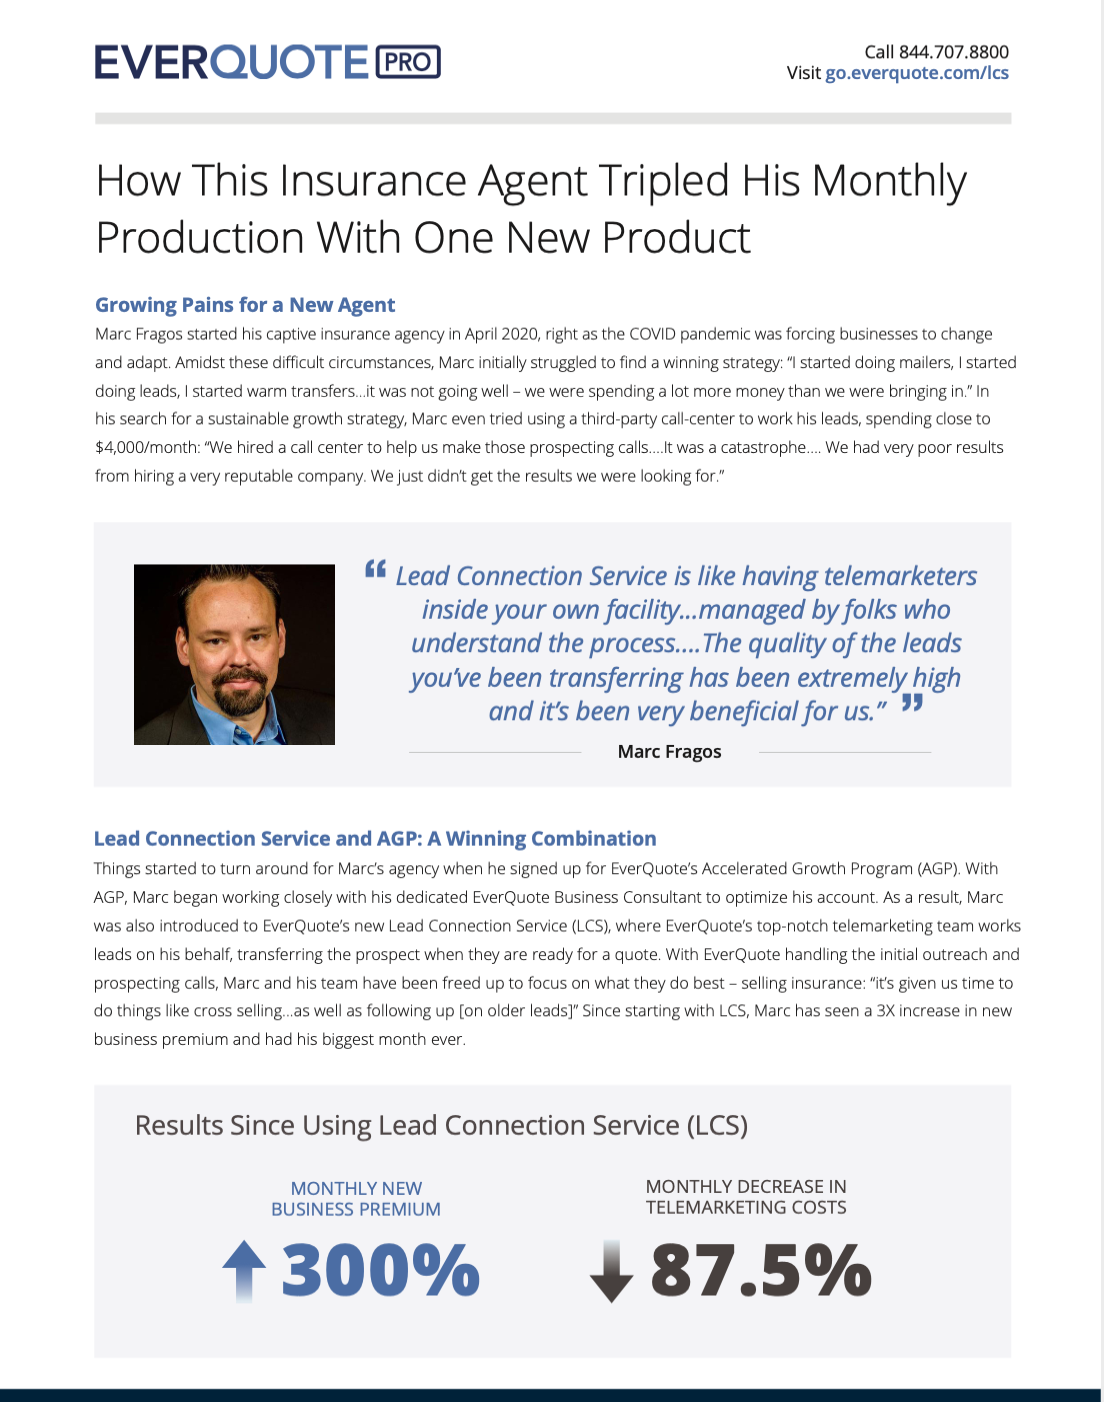 EverQuote Lead Connection Service (LCS) Case Study – Marc Fragos